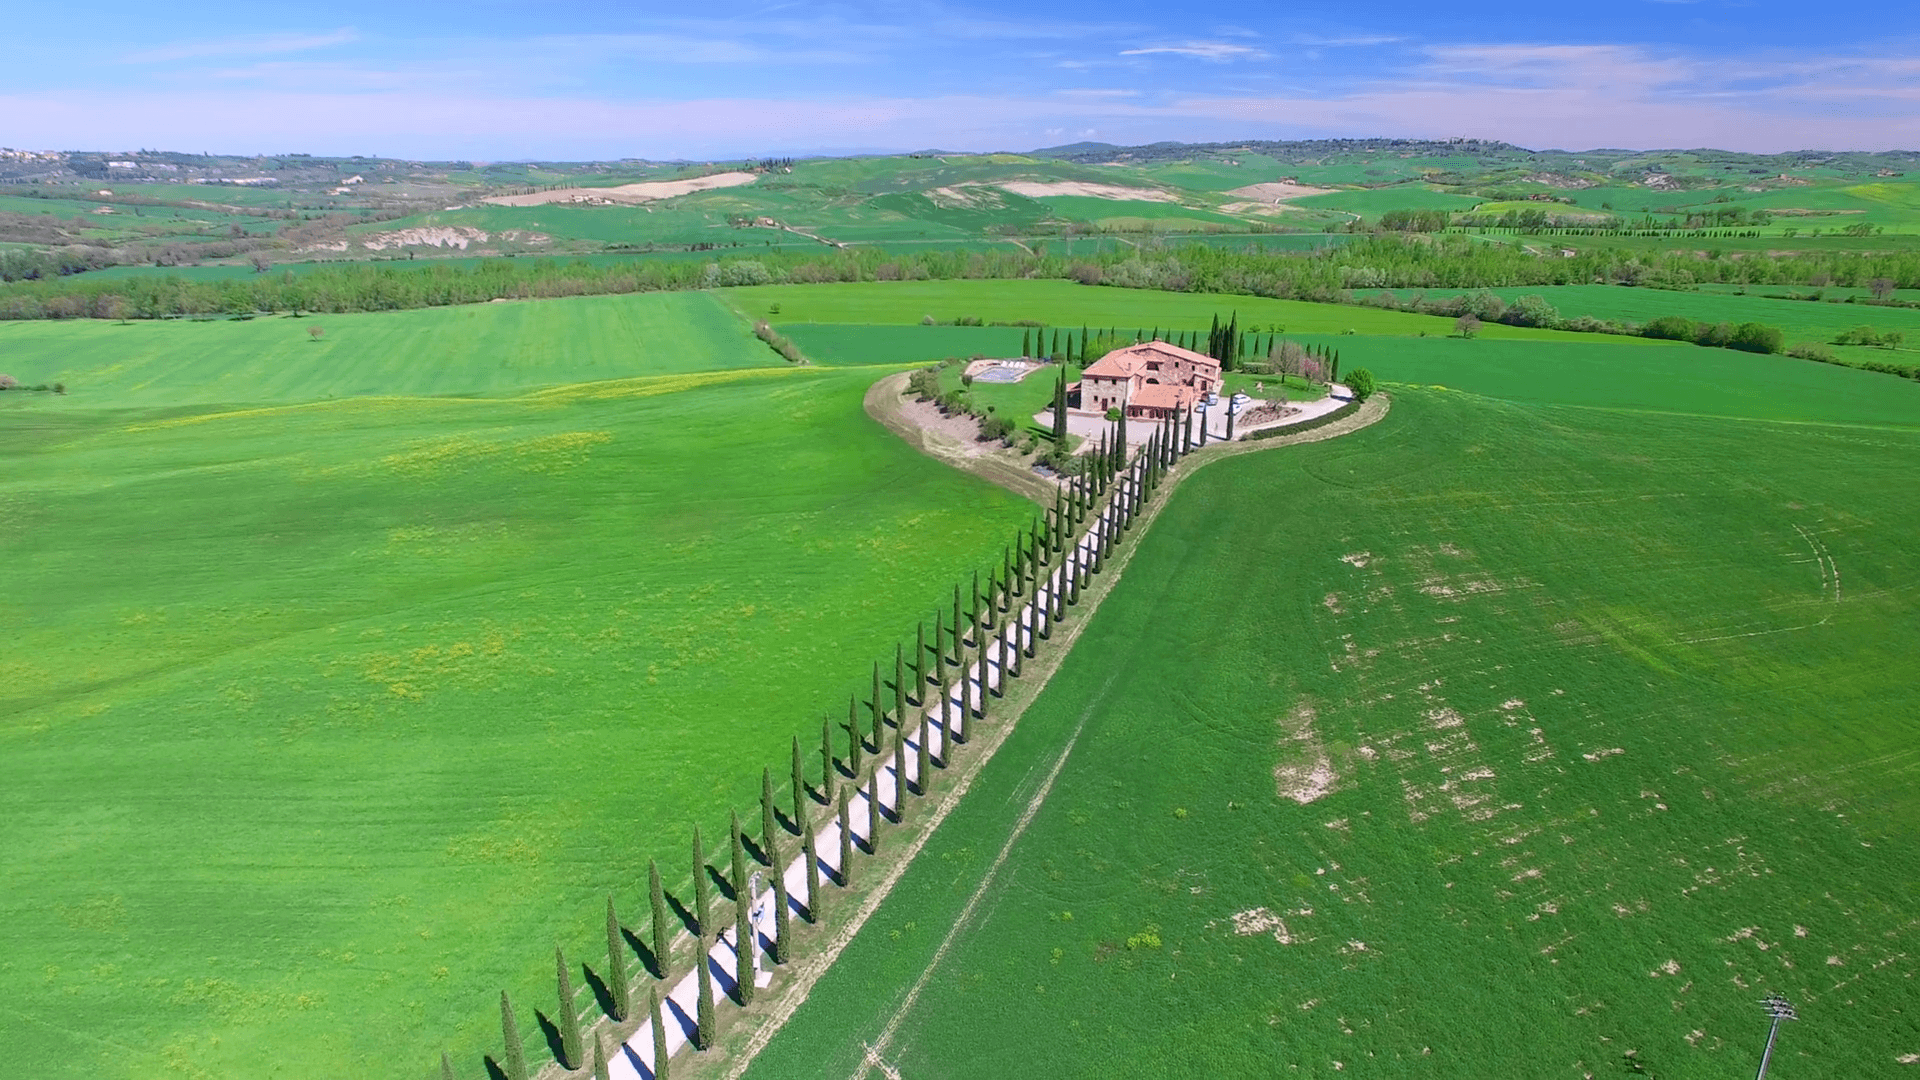 Aerial view of Tuscany countryside with cypresses and old house